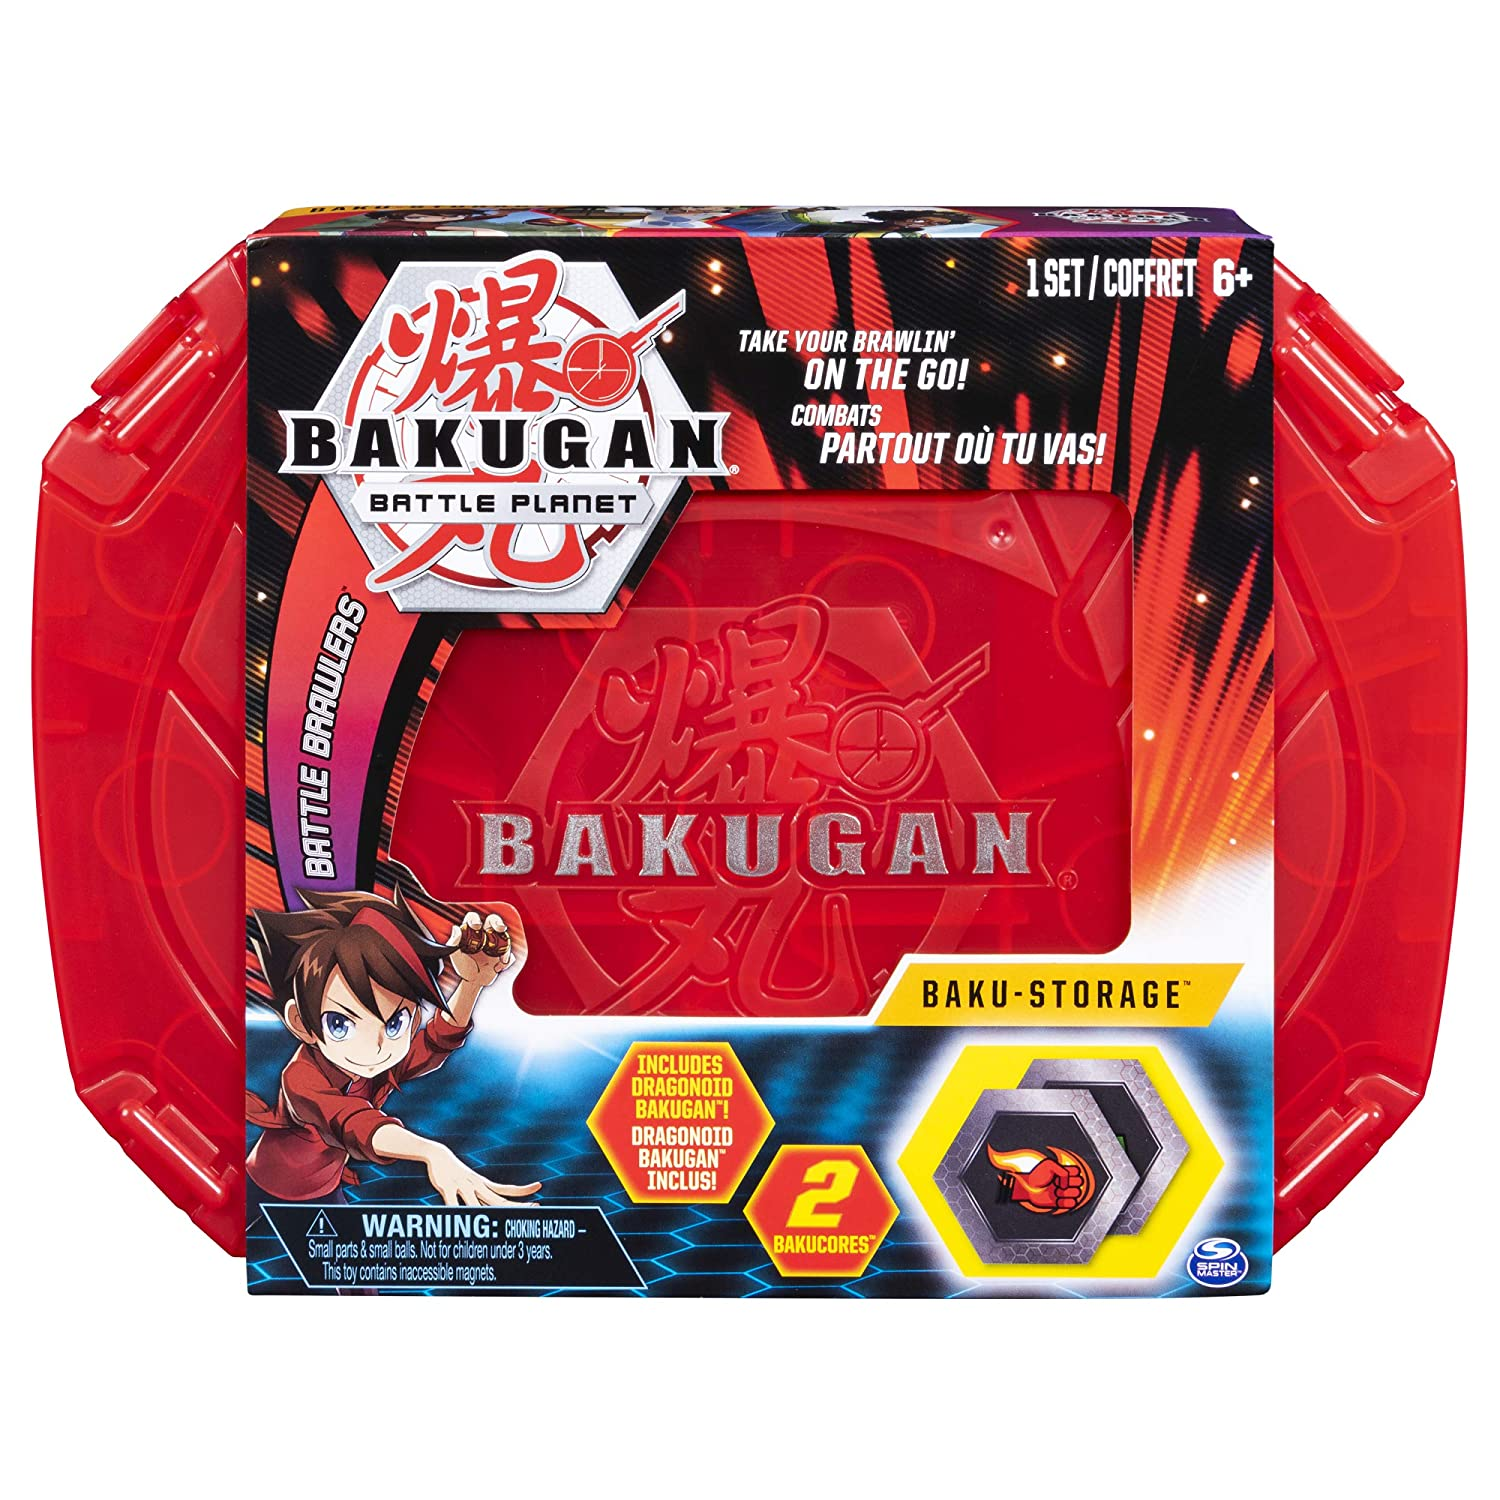 Bakugan, Baku-Storage Case (Red) Collectible Creatures, for Ages 6 and Up